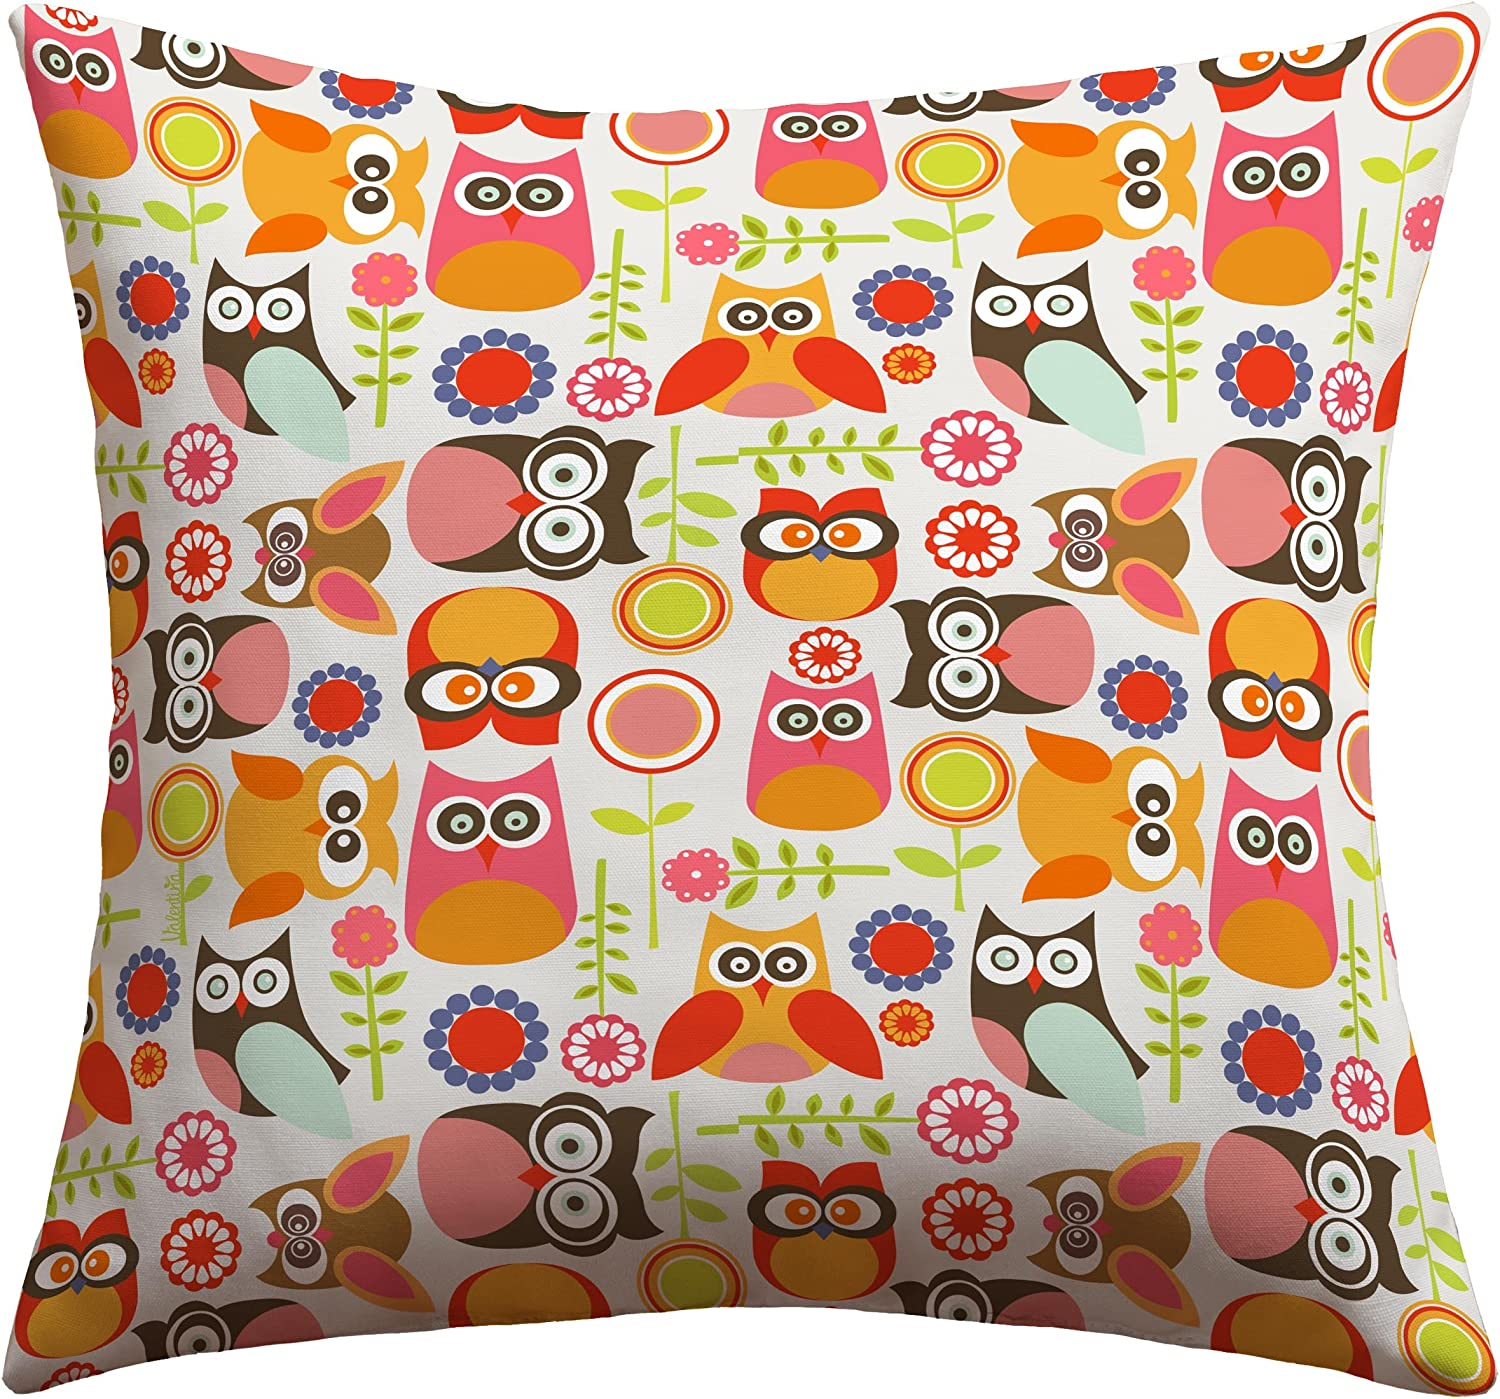 Deny Designs Valentina Ramos Cute Little Owls Outdoor Throw Pillow, 26 x 26